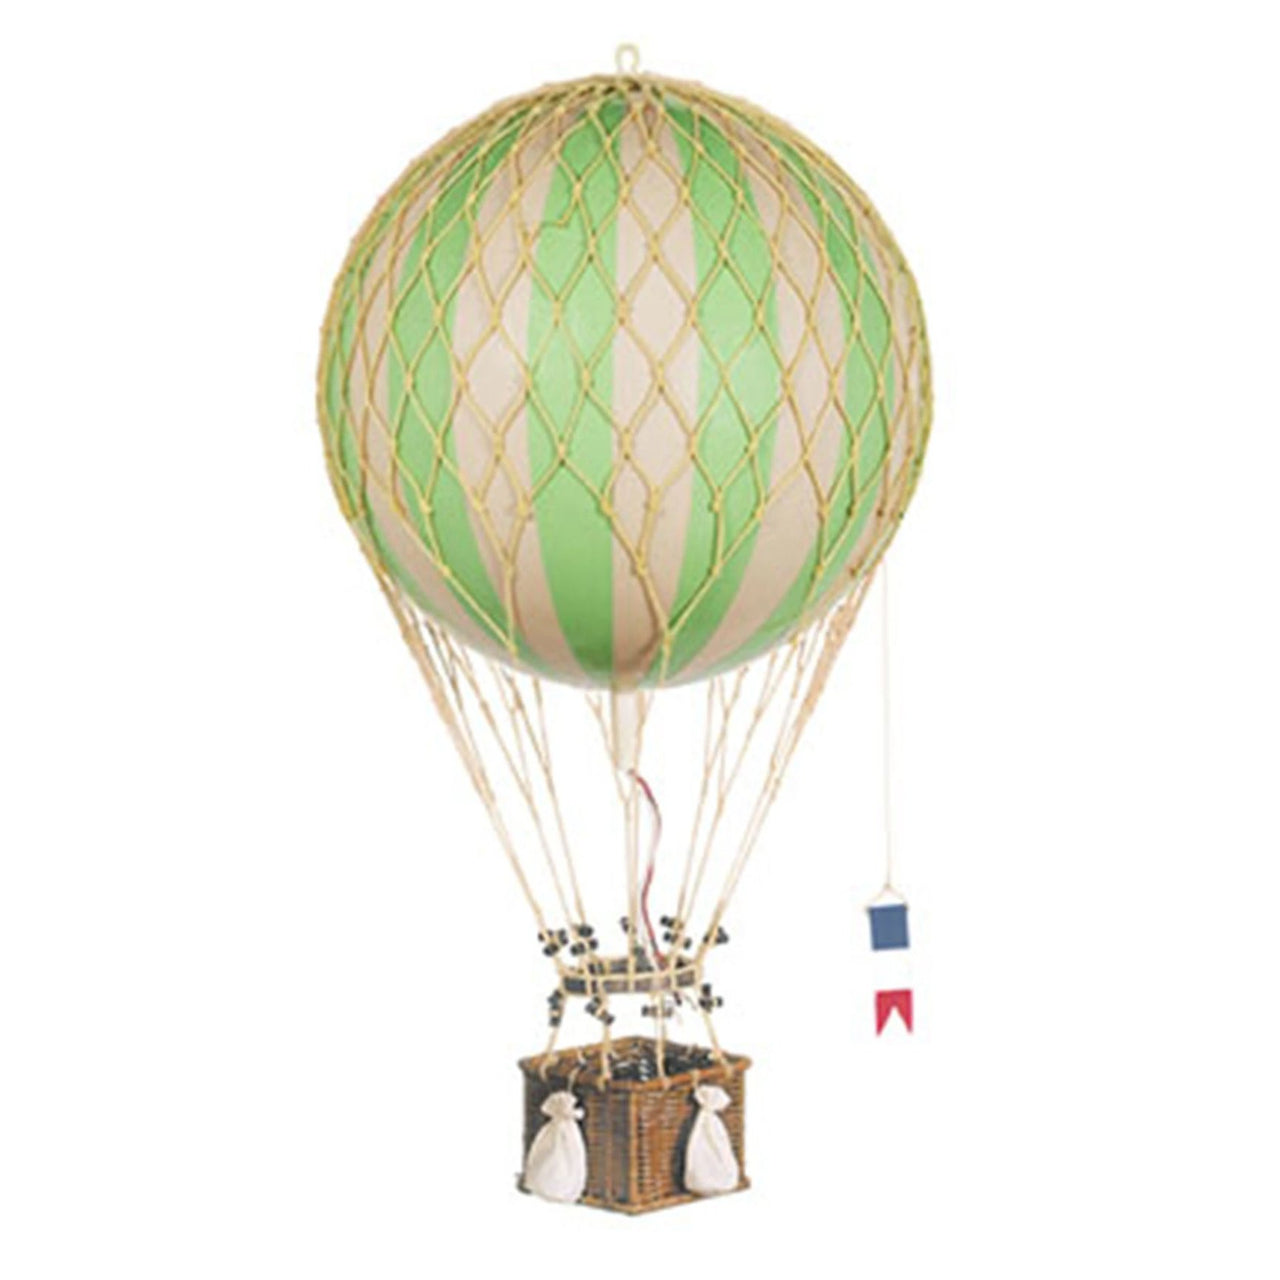 Hot Air Balloons Large - Kids Room Decor | Toys Gifts | Childrens Interiors | Rooms for Rascals